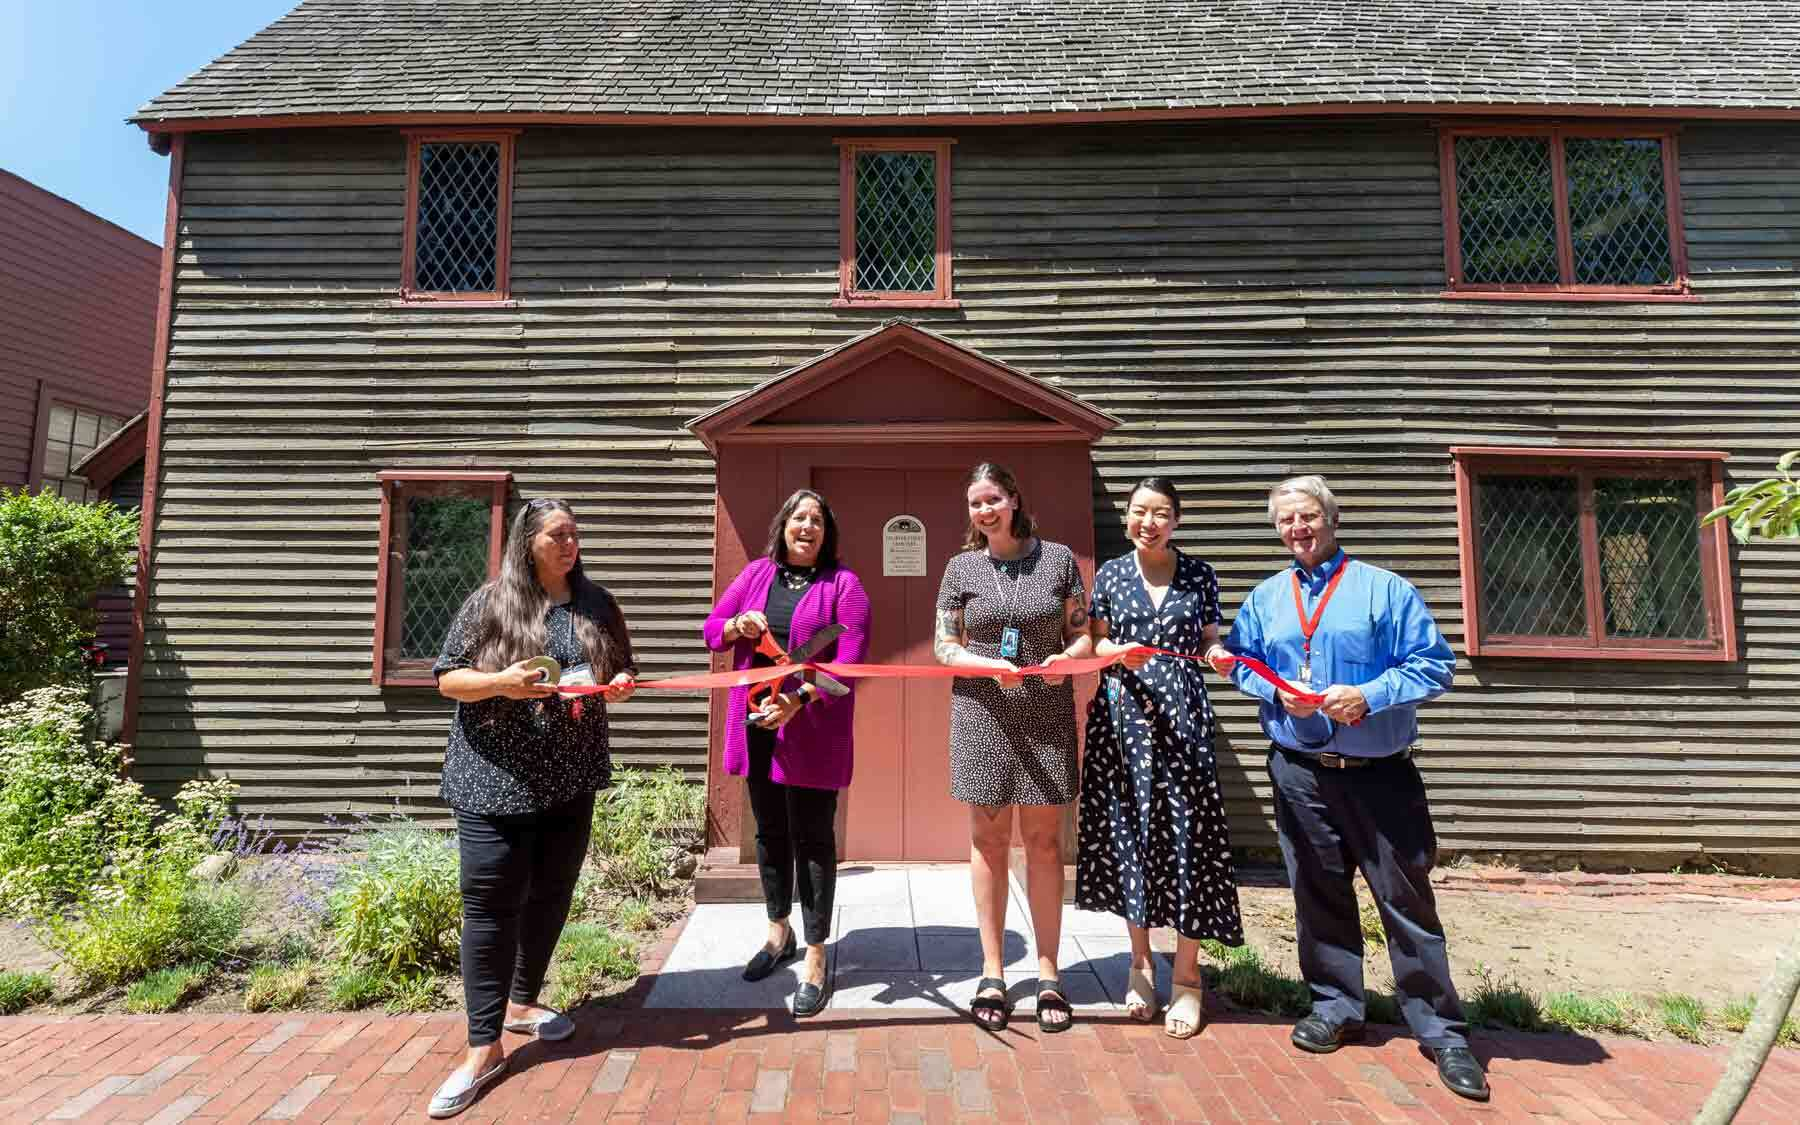 Mayor Kim Driscoll and representatives from the City and PEM cut the ribbon on the new Welcome Center on June 30. Photo by Kathy Tarantola/PEM.